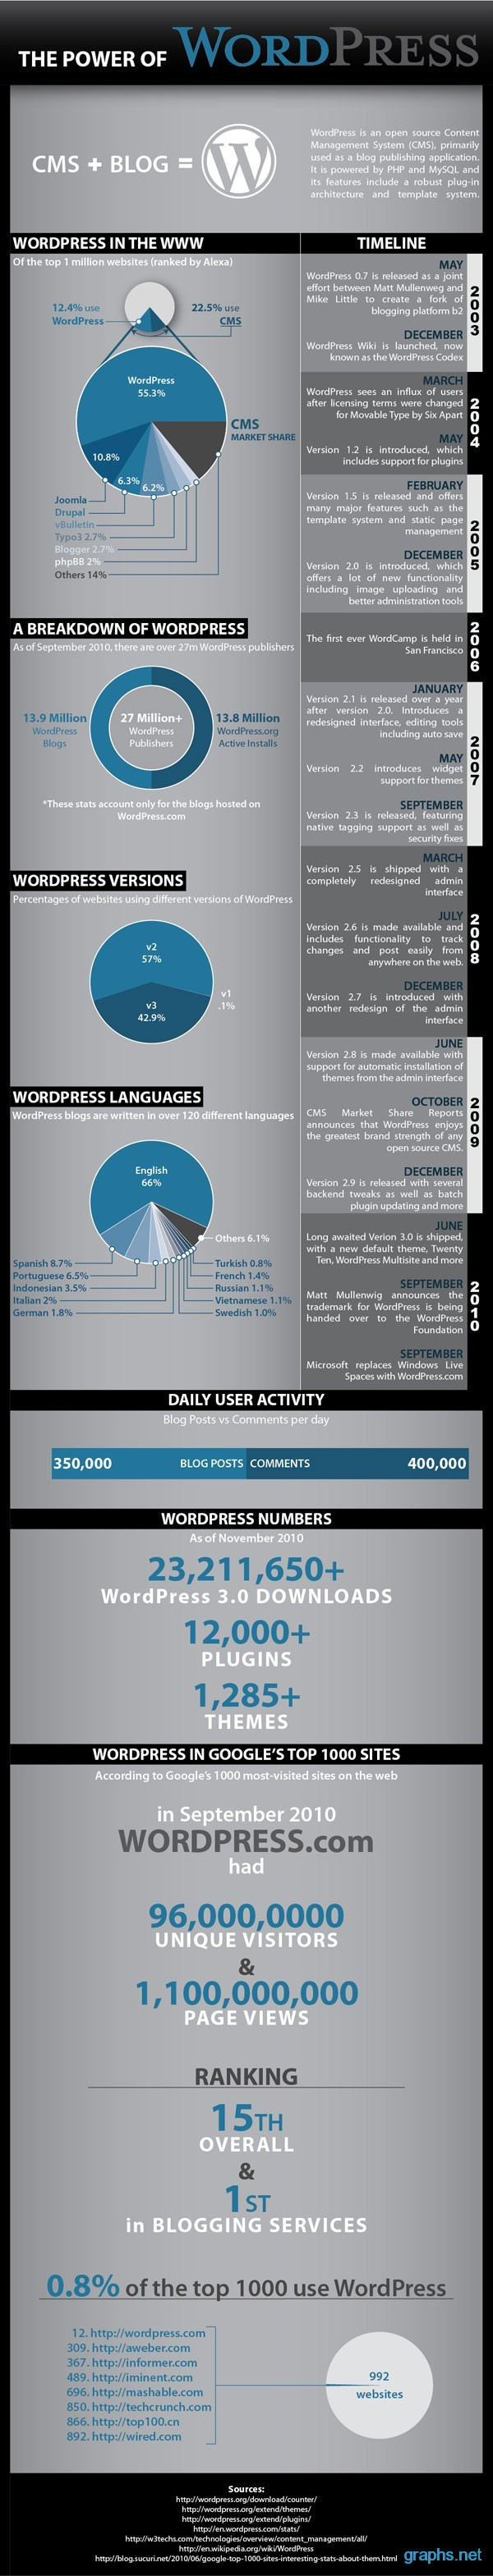 Evolution of Wordpress